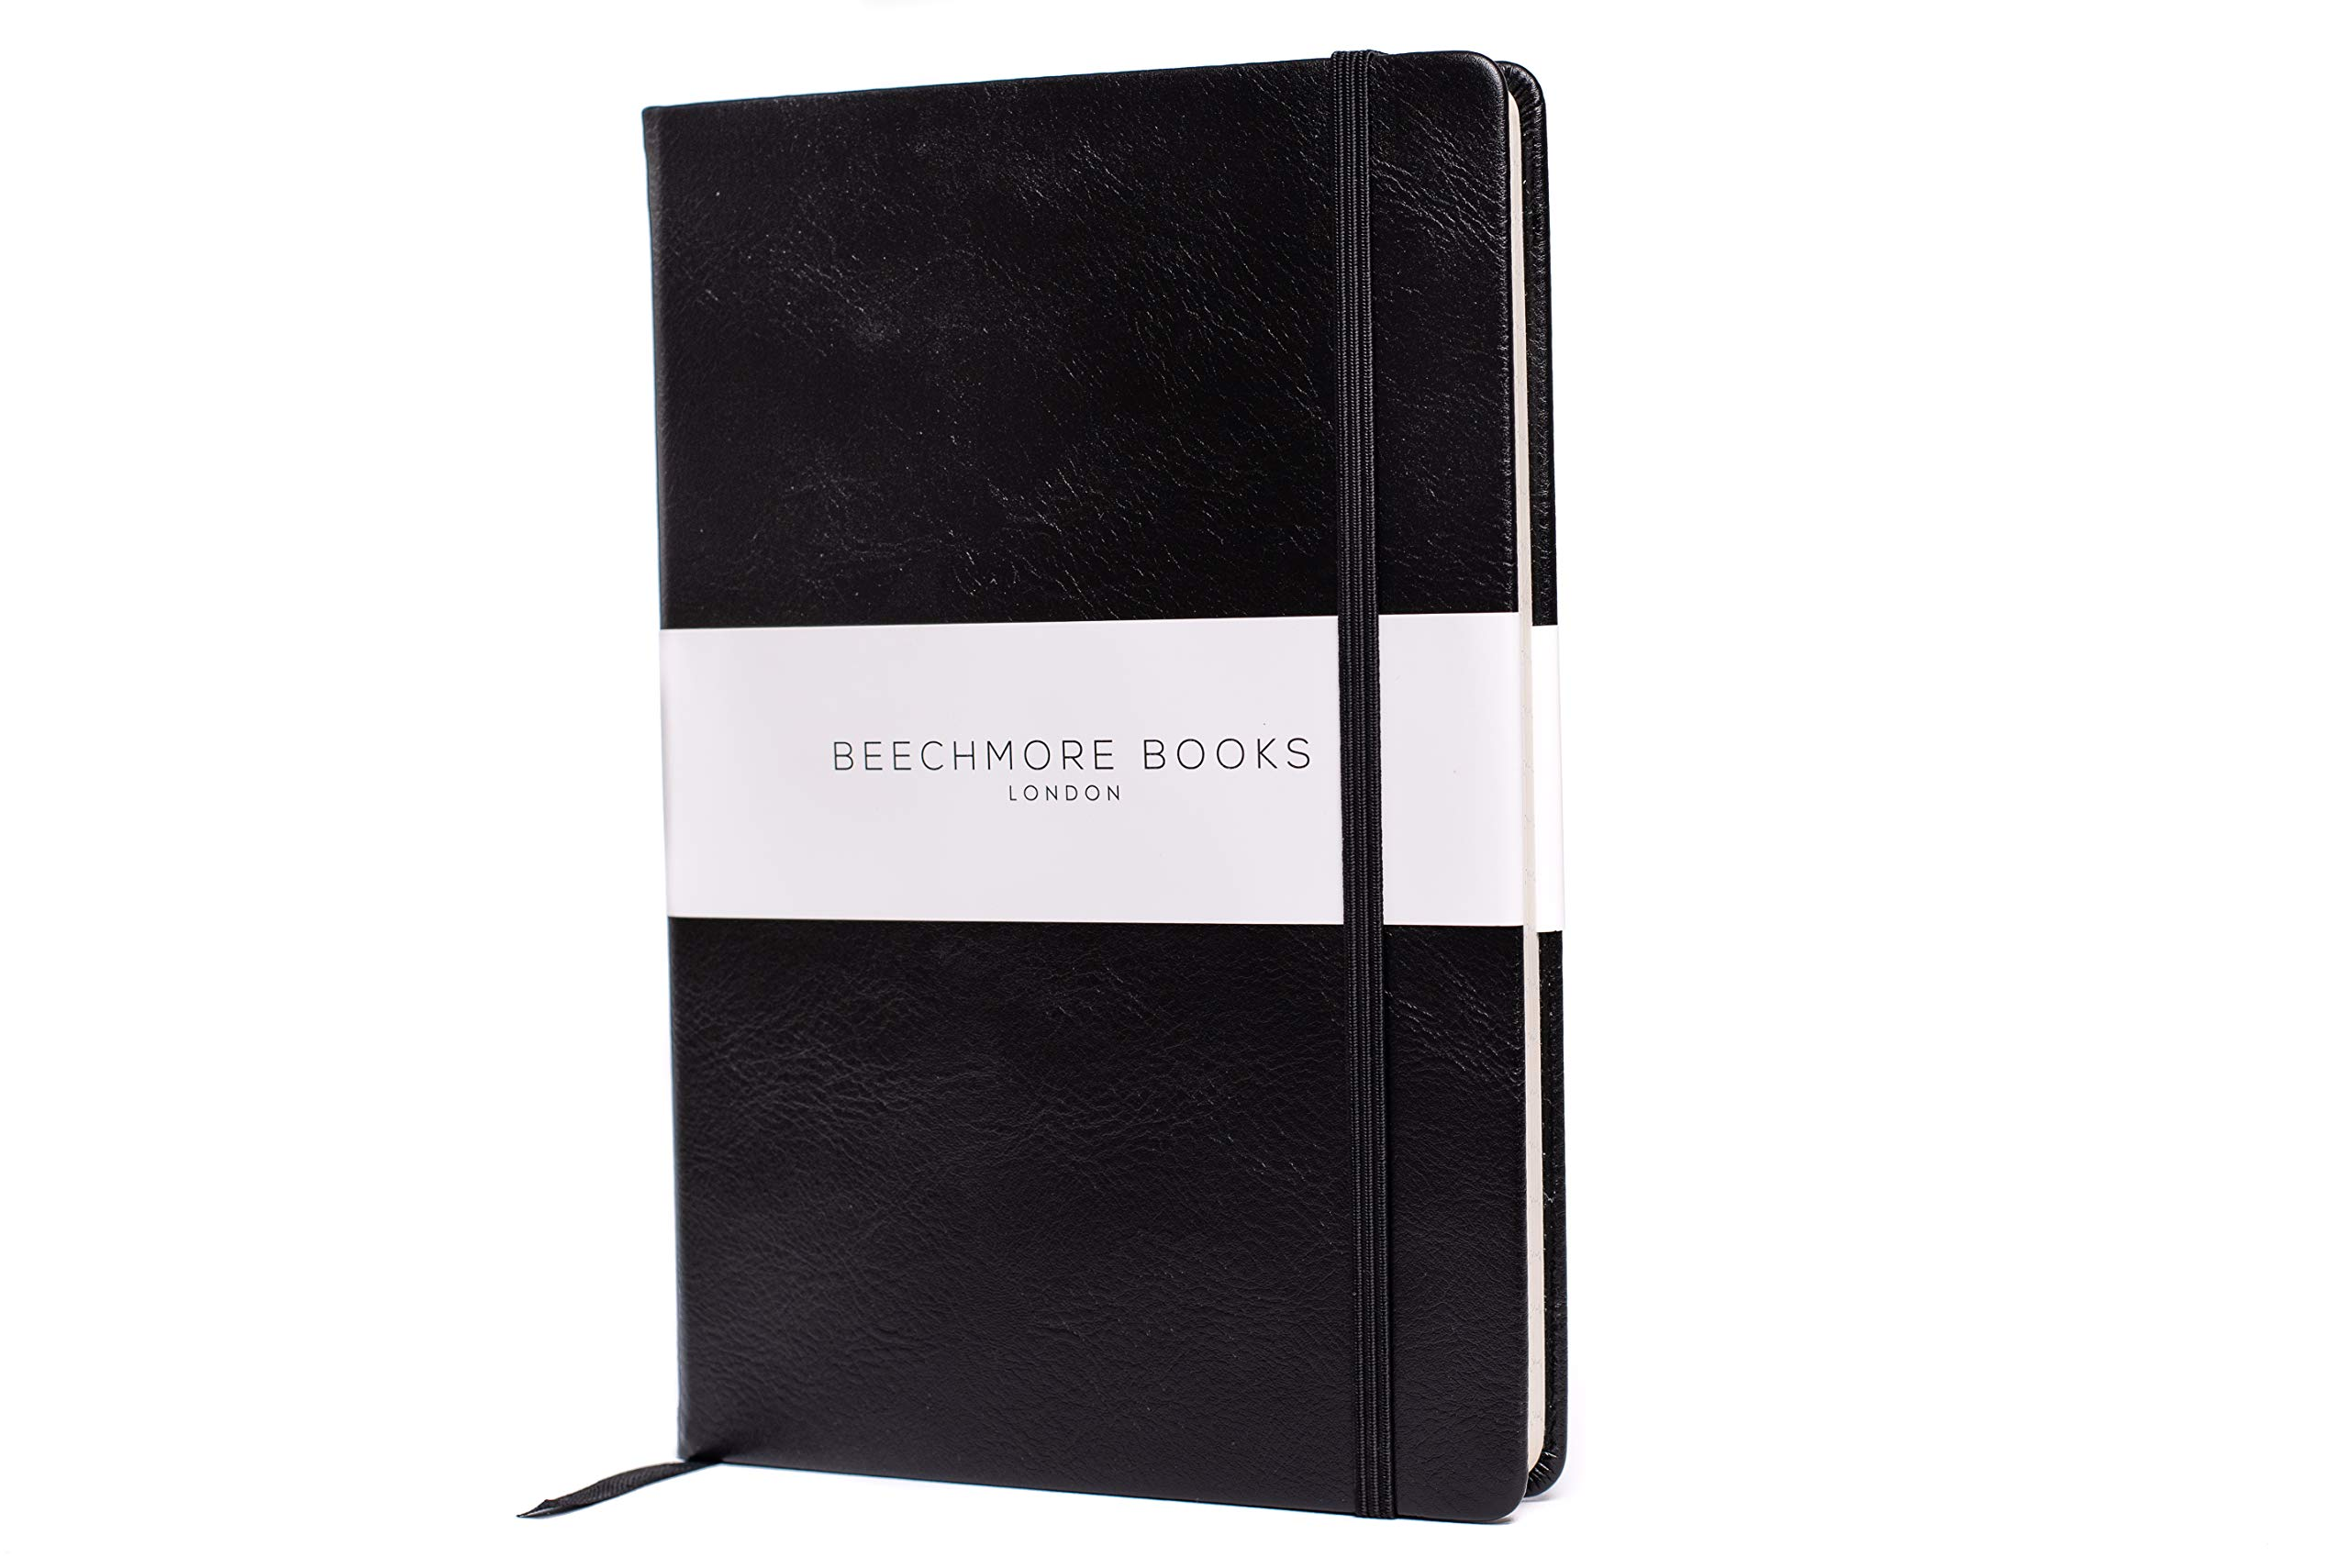 Premium British Notebook/Notepad - Beechmore Books A5 Notebook, 120 gsm cream paper, Vegan Leather, Hardcover Journal in Gift Box (Charcoal Black, Ruled)